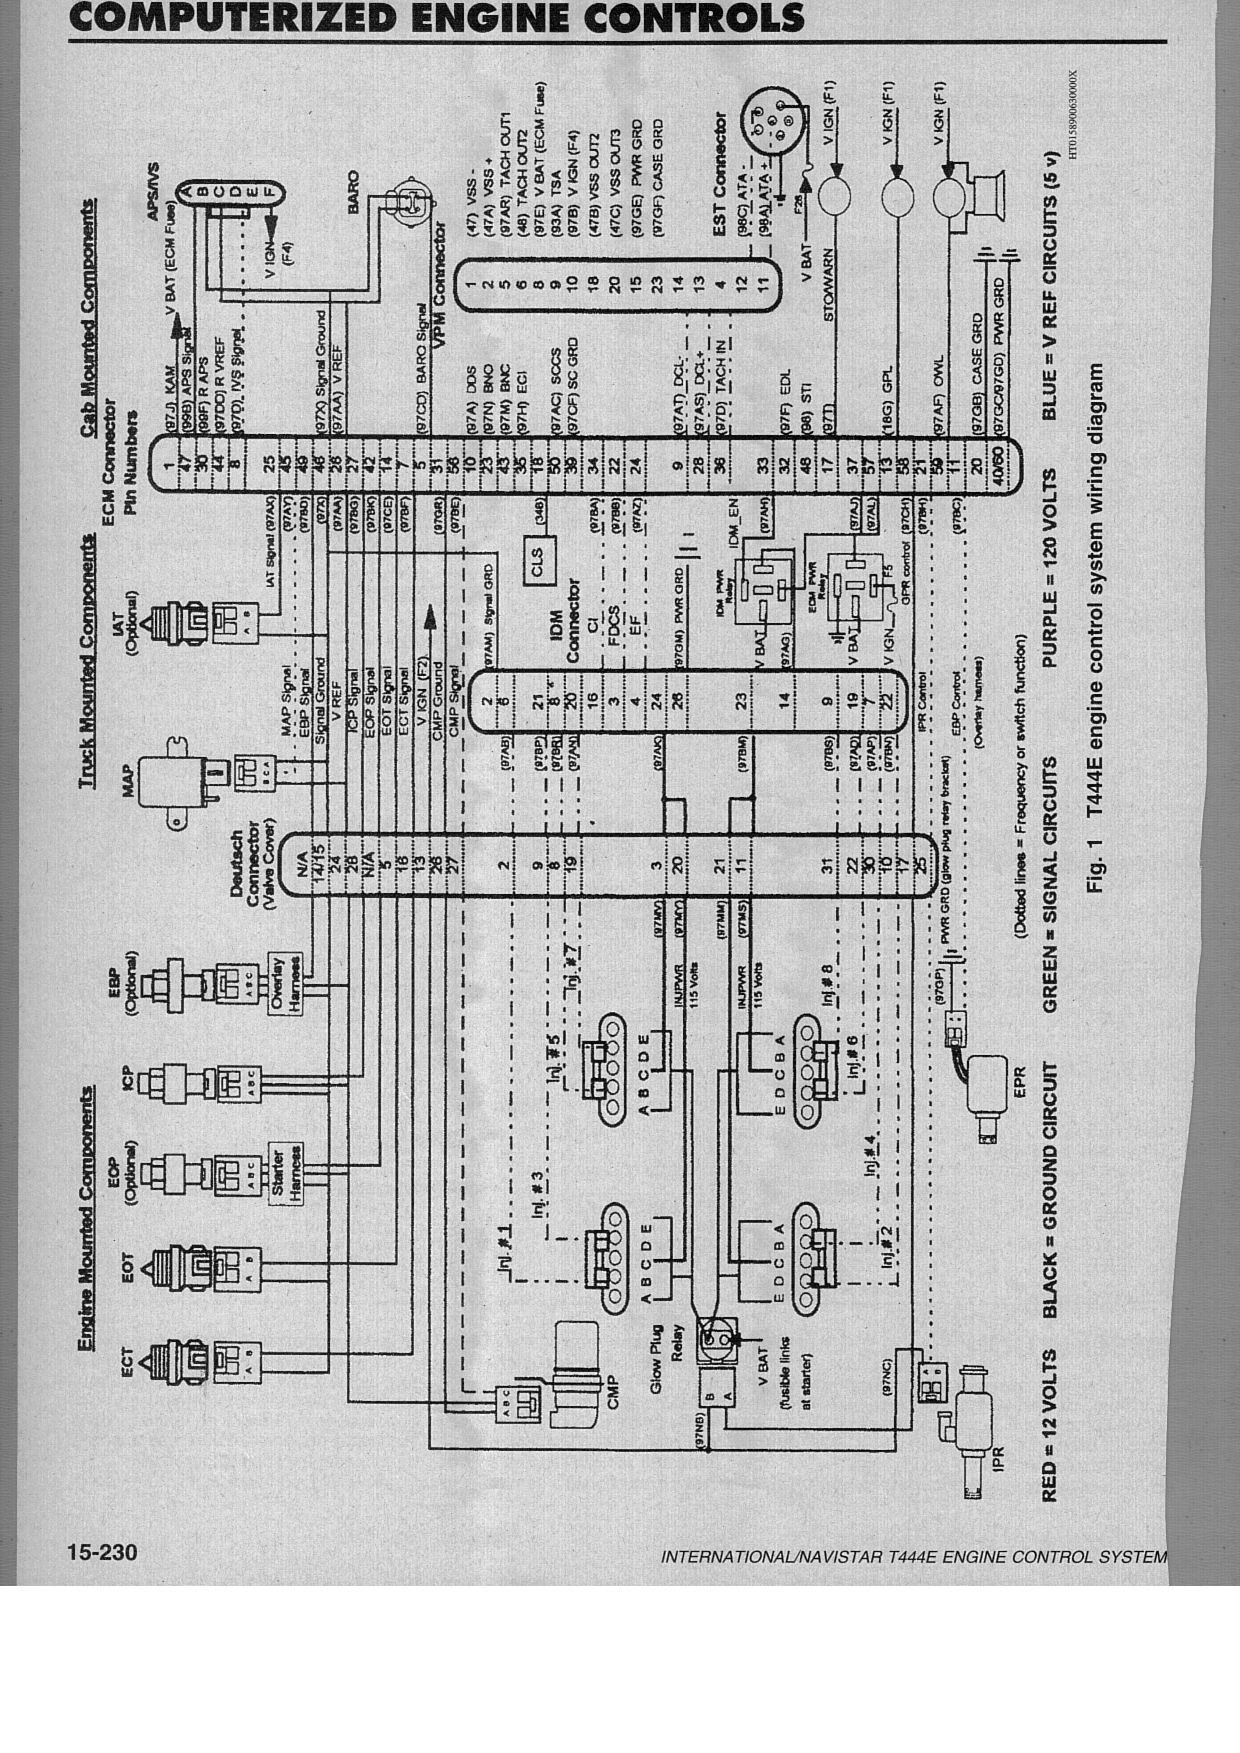 Navistar Wiring Diagram Blog About Wiring Diagrams 7.3 IDI Wiring Diagrams  2000 Navistar Wiring Diagram